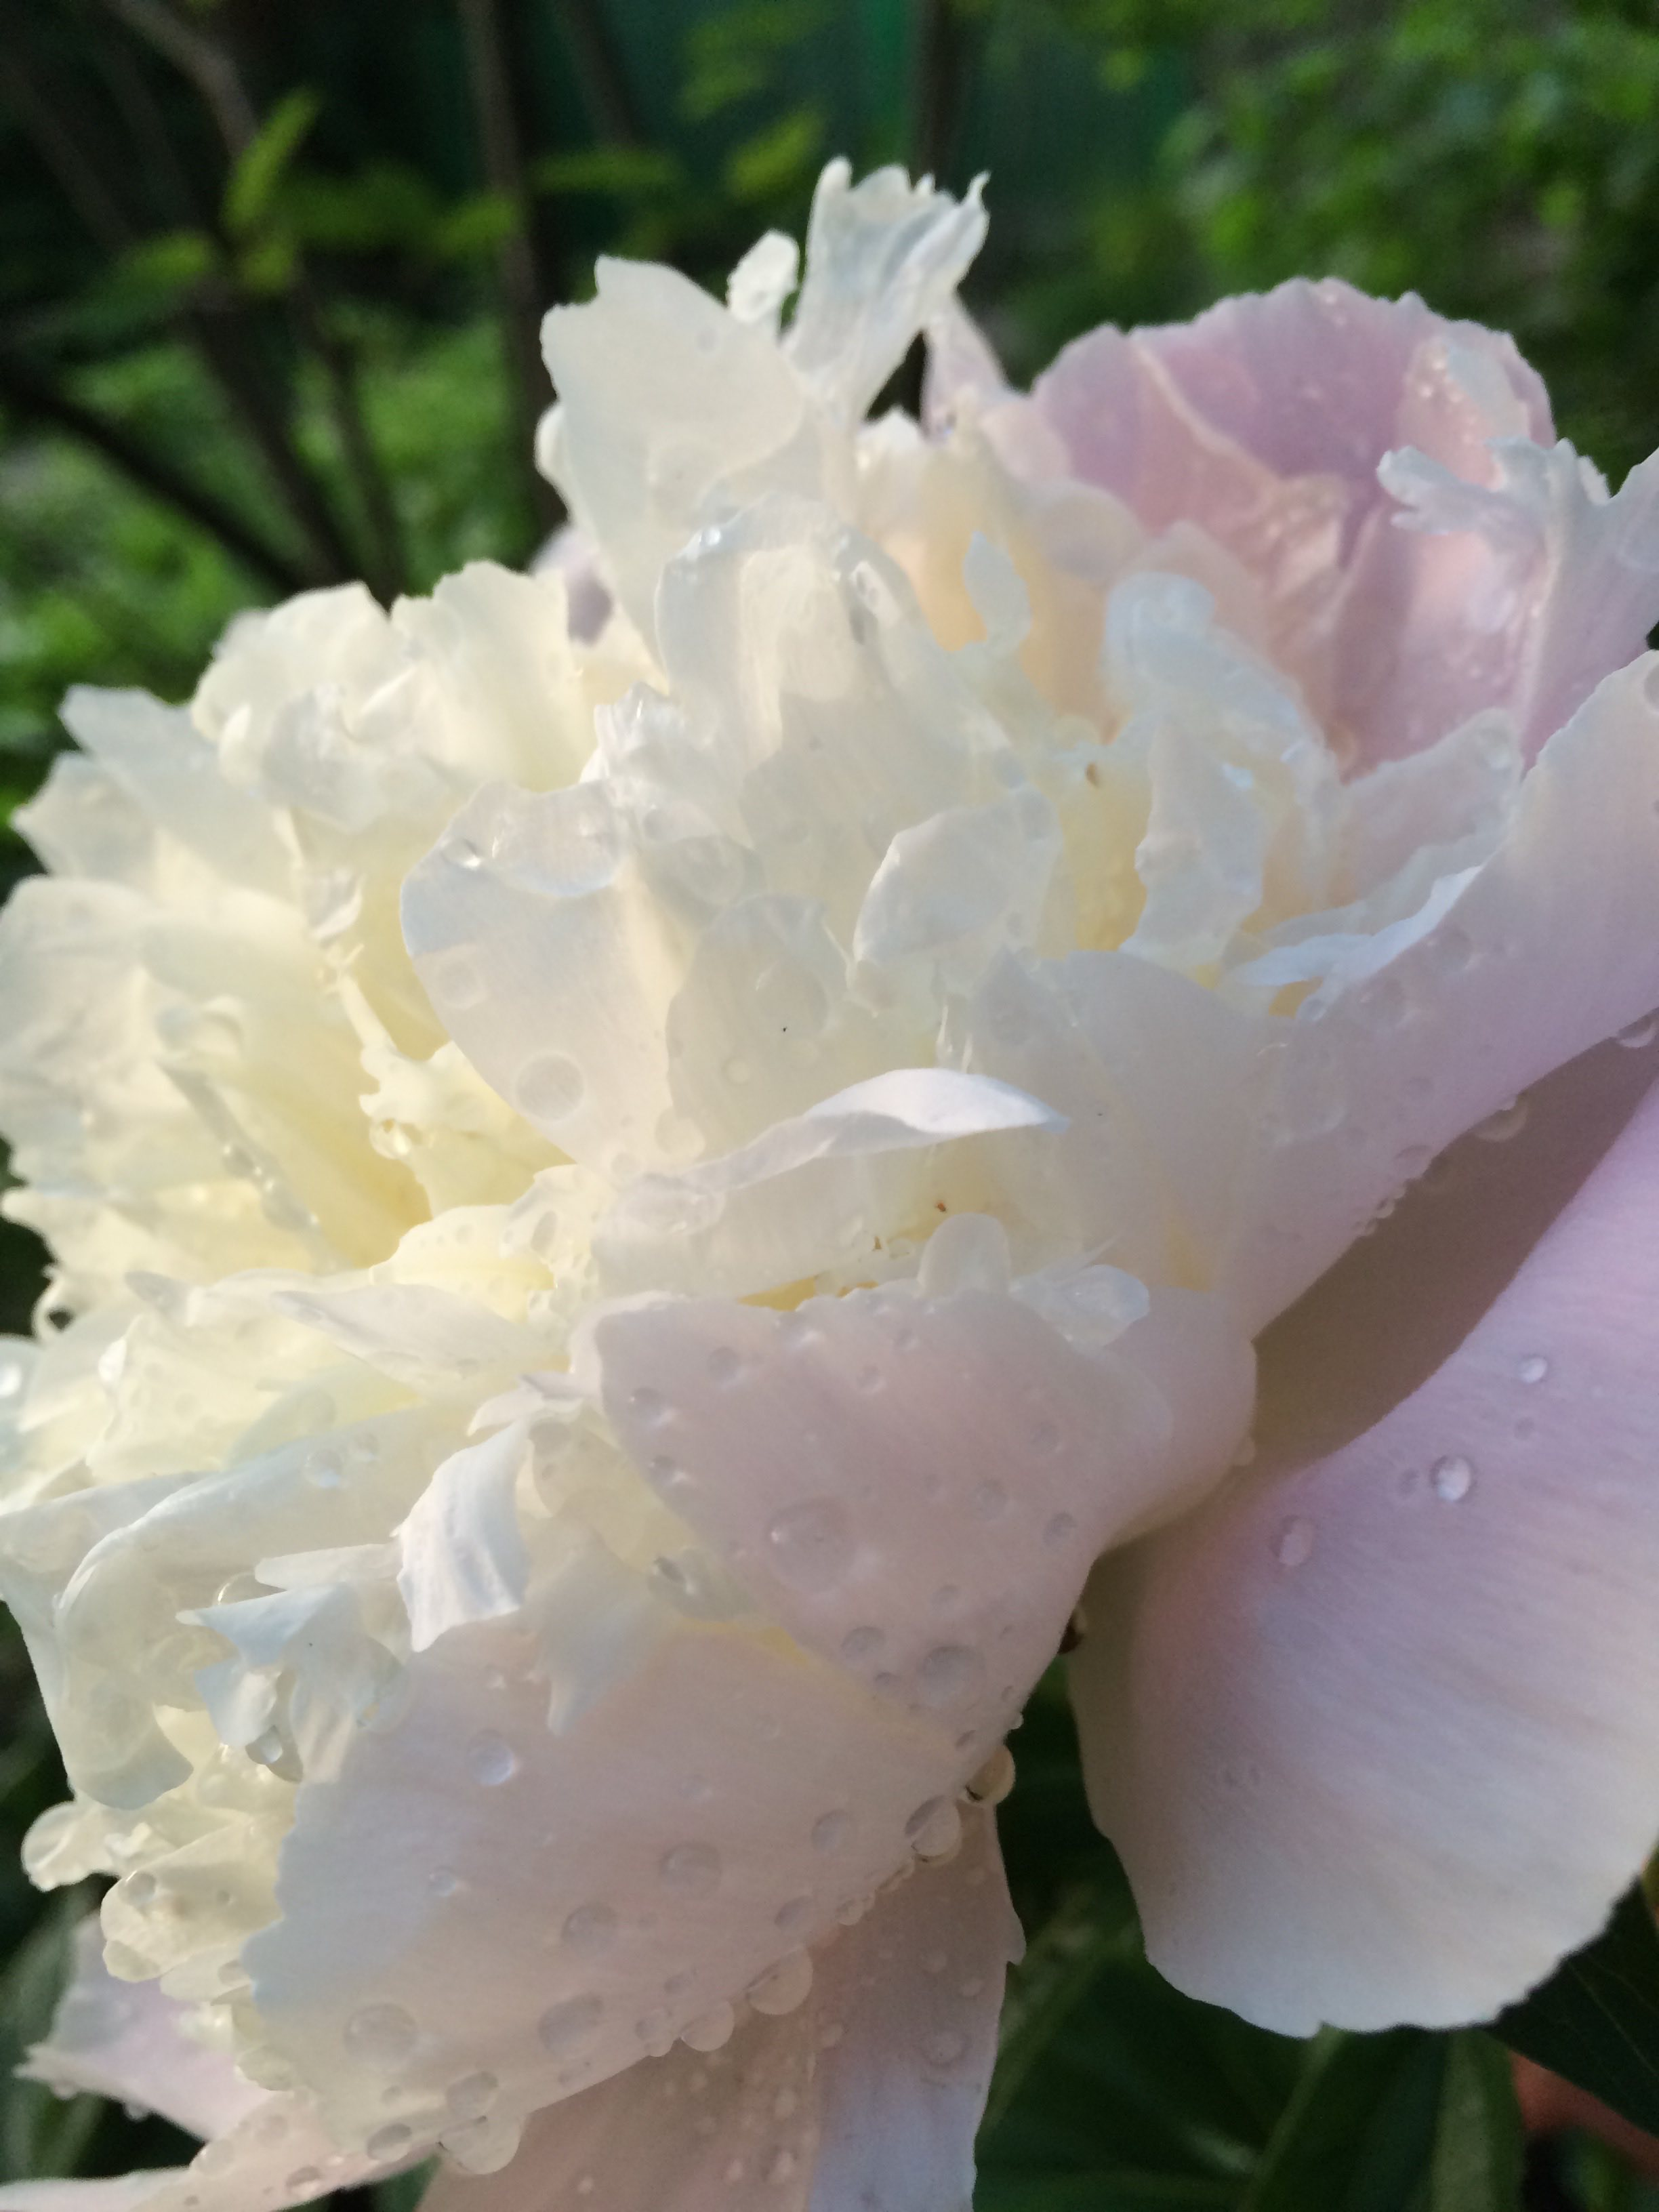 Peony in our front yard. #1 To-Do Item-See the beauty all around you. Photo credit: Ian Warren (my son!)